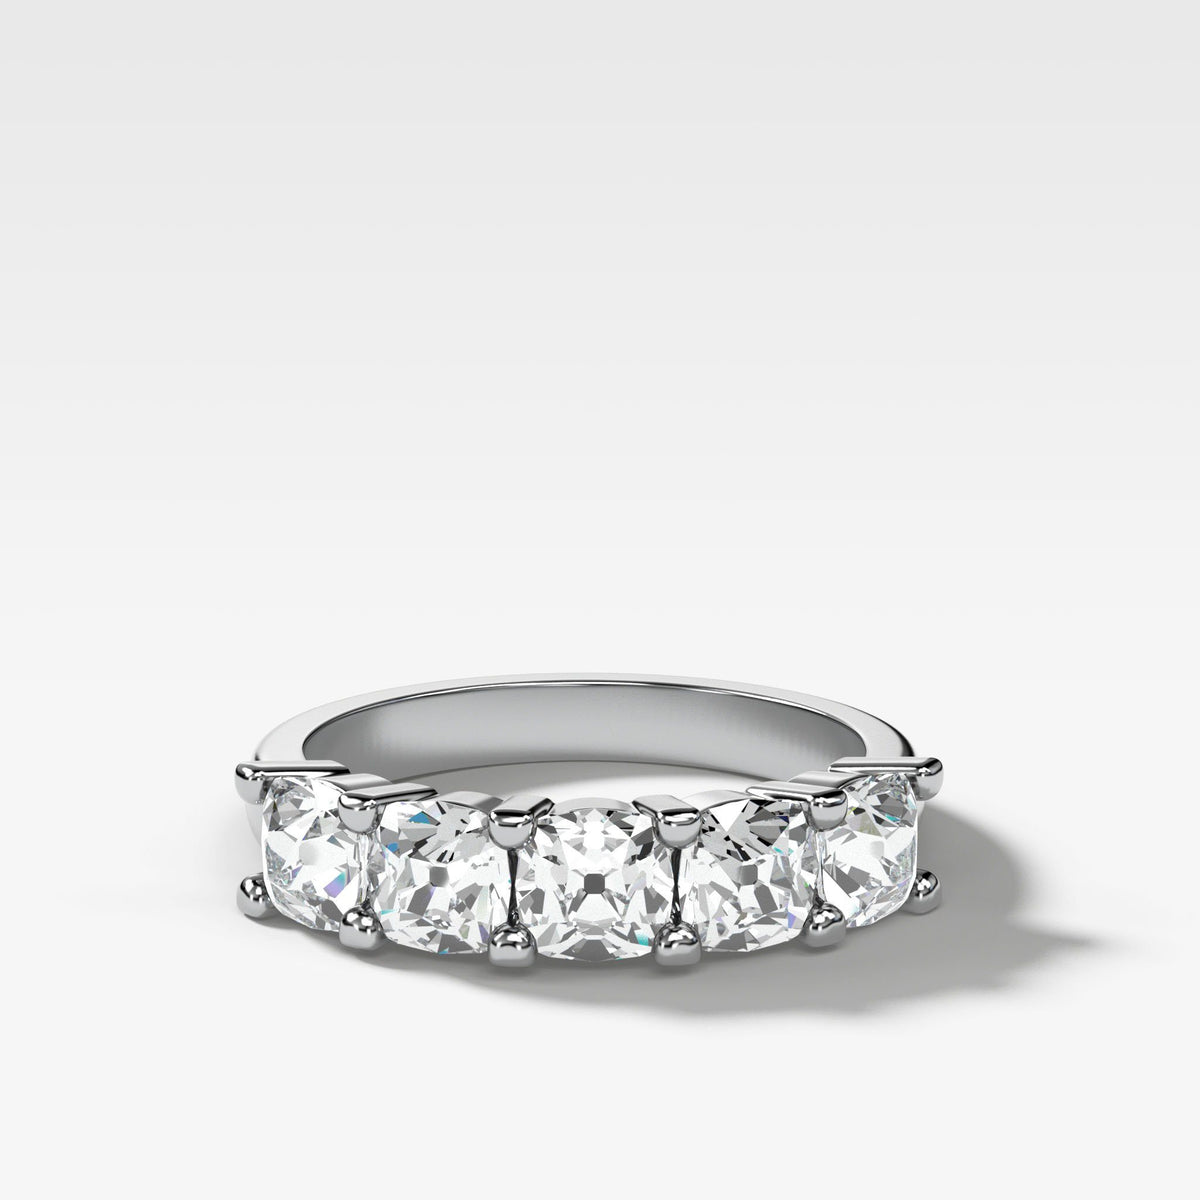 Five Stone Shared Prong Diamond Band With Old Mine Cuts (1.65ctw) In White Gold By Good Stone